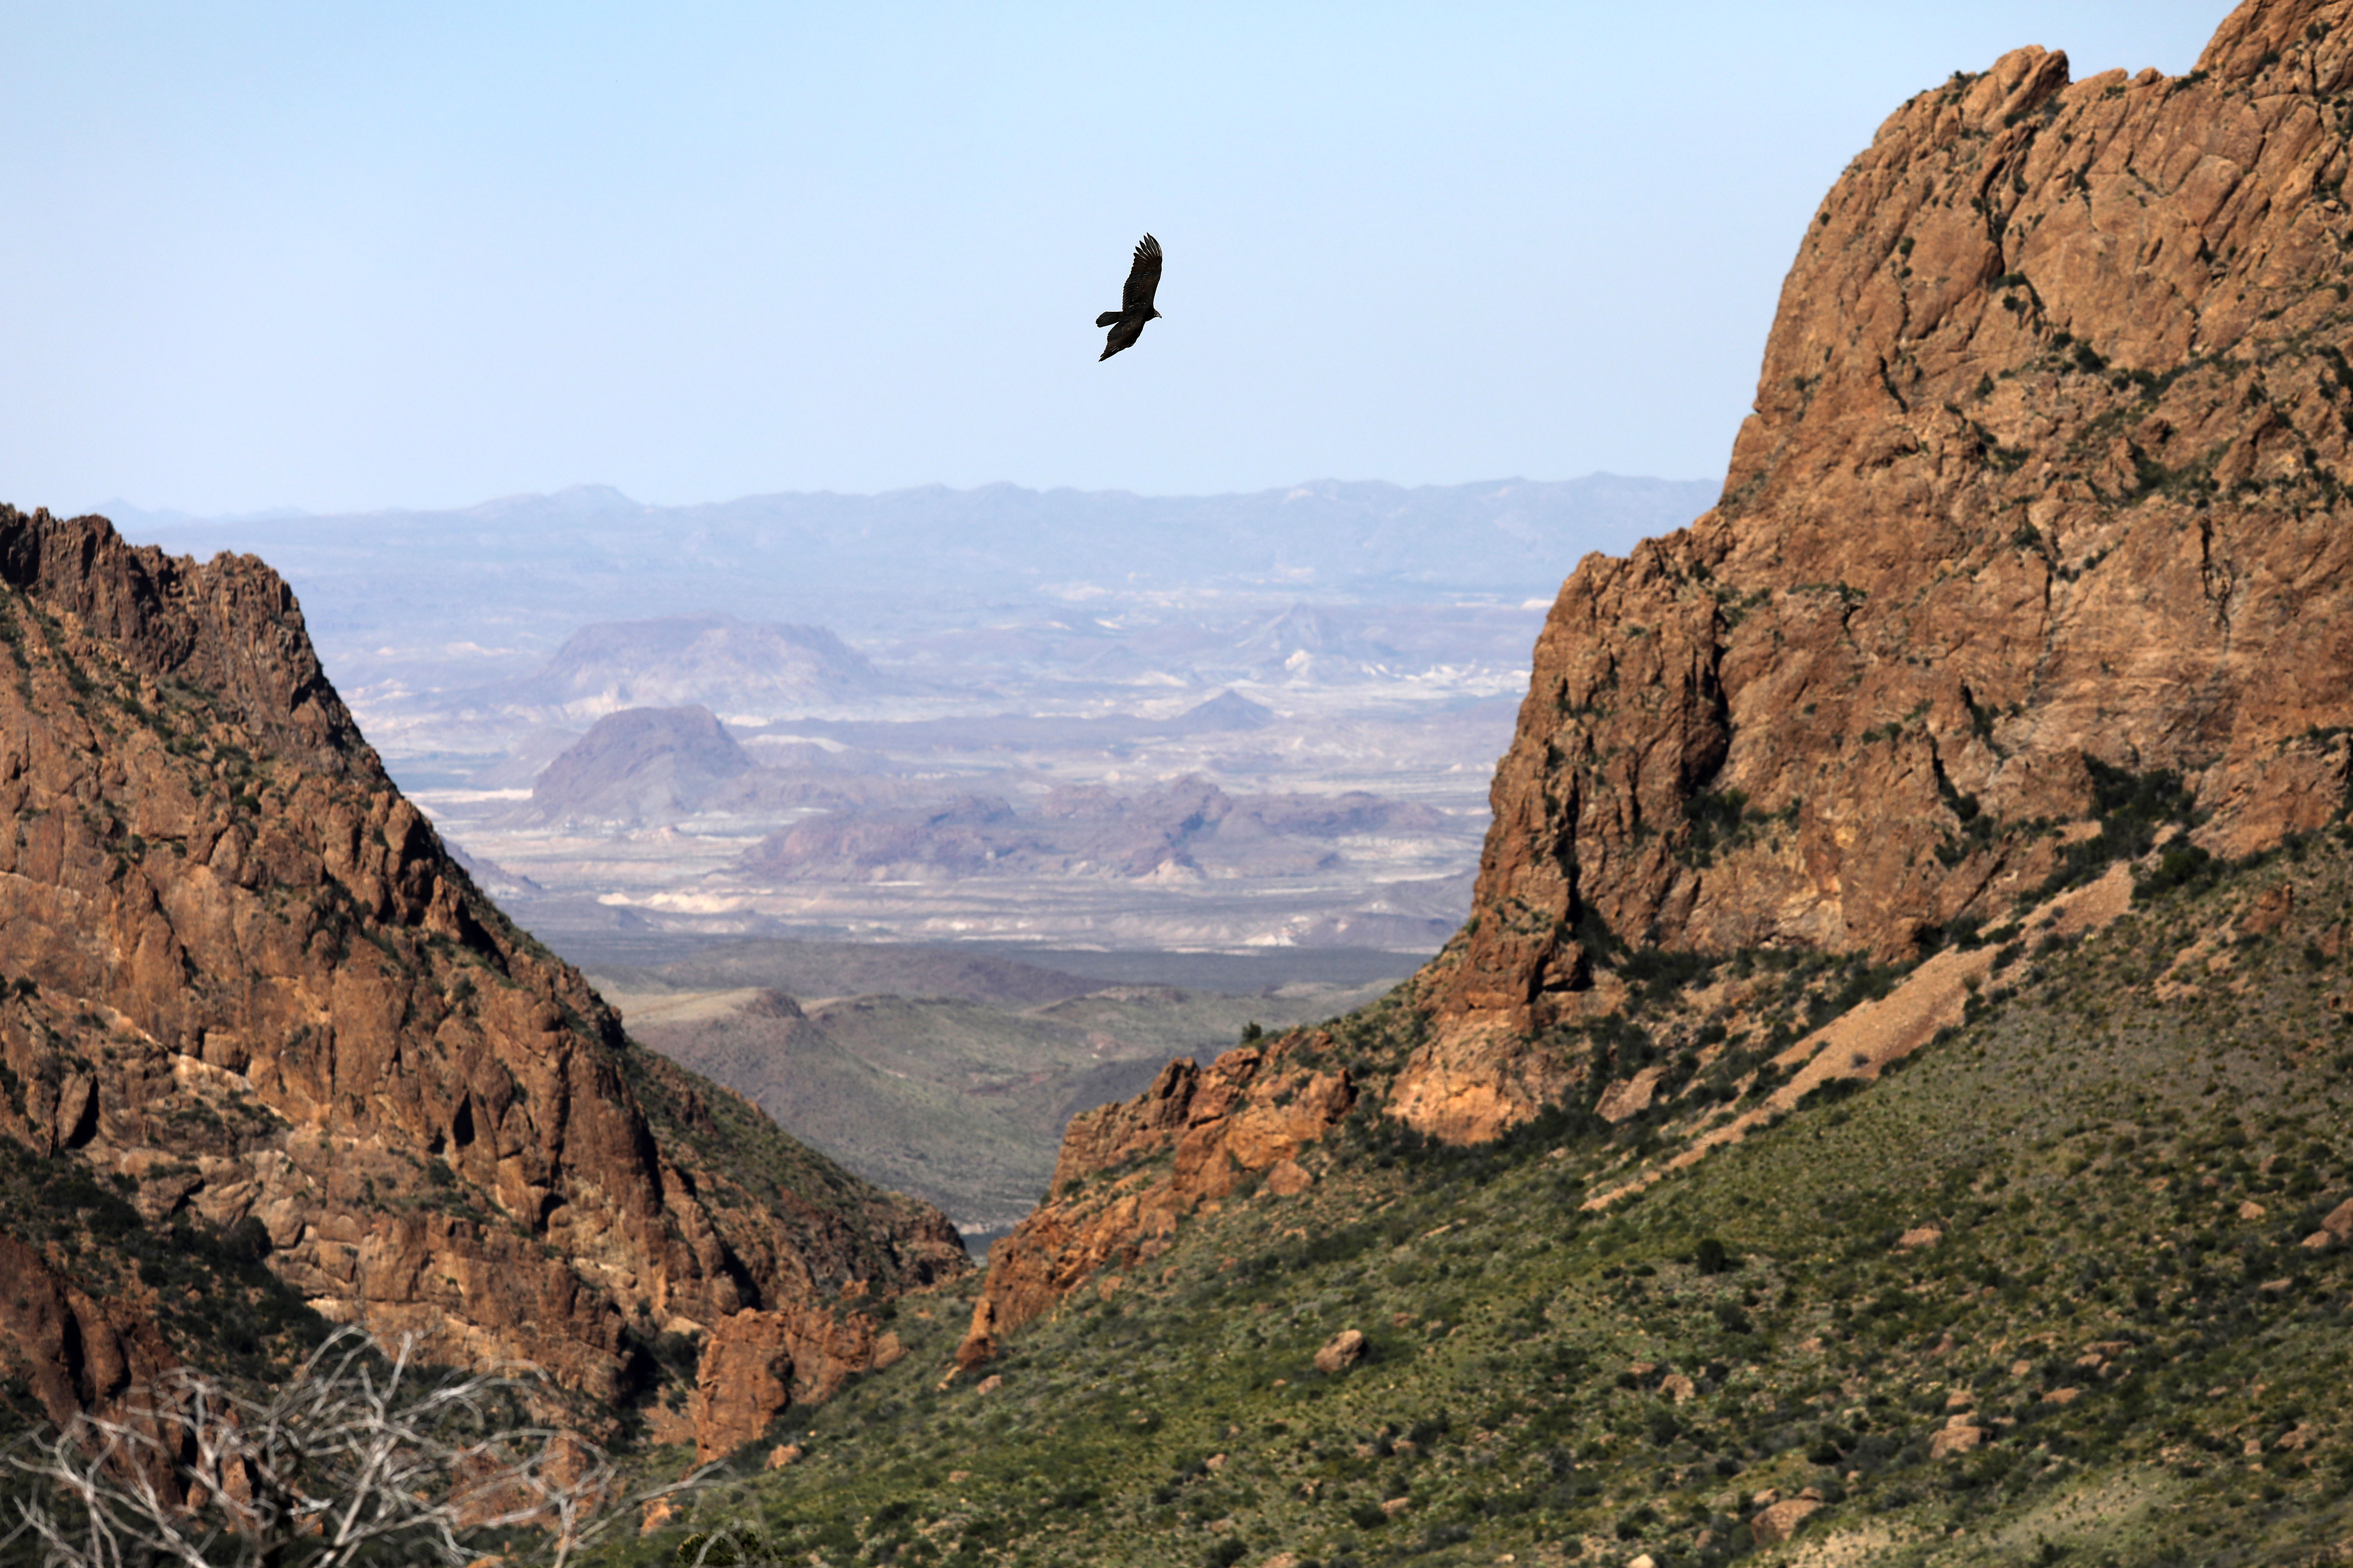 BIG BEND NATIONAL PARK, TX - OCTOBER 16:  A falcon flies over the Chisos Basin on October 16, 2016 in the Big Bend National Park in West Texas. Big Bend is a rugged, vast and remote region along the U.S.-Mexico border and includes the Big Bend National Park.  (Photo by John Moore/Getty Images)